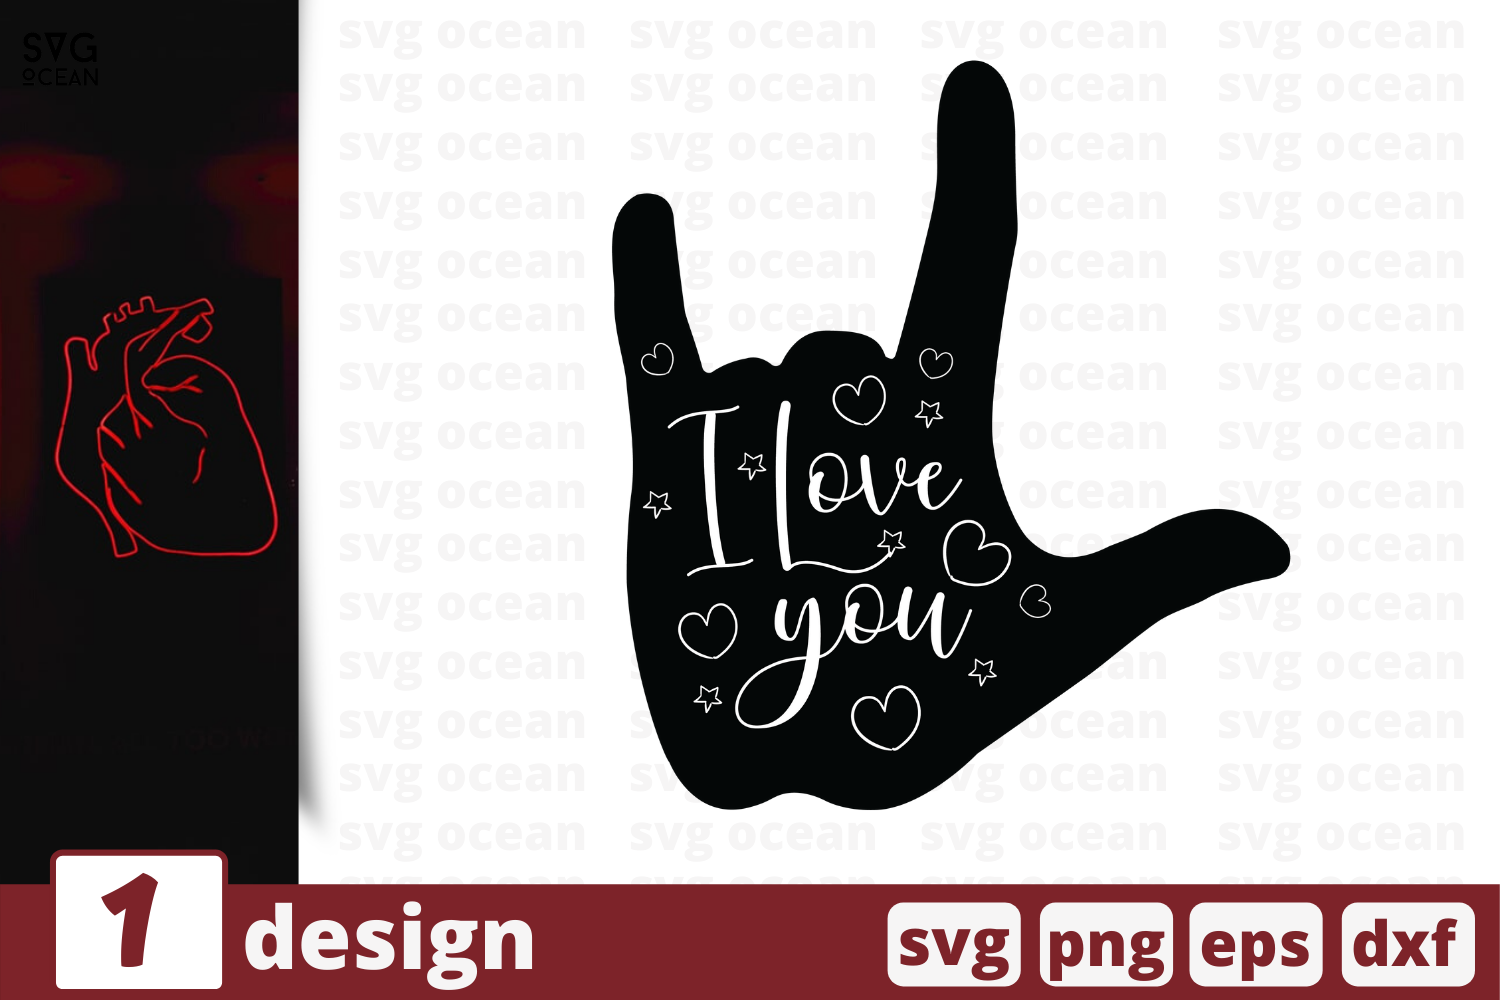 Download Free I Love You Graphic By Svgocean Creative Fabrica for Cricut Explore, Silhouette and other cutting machines.